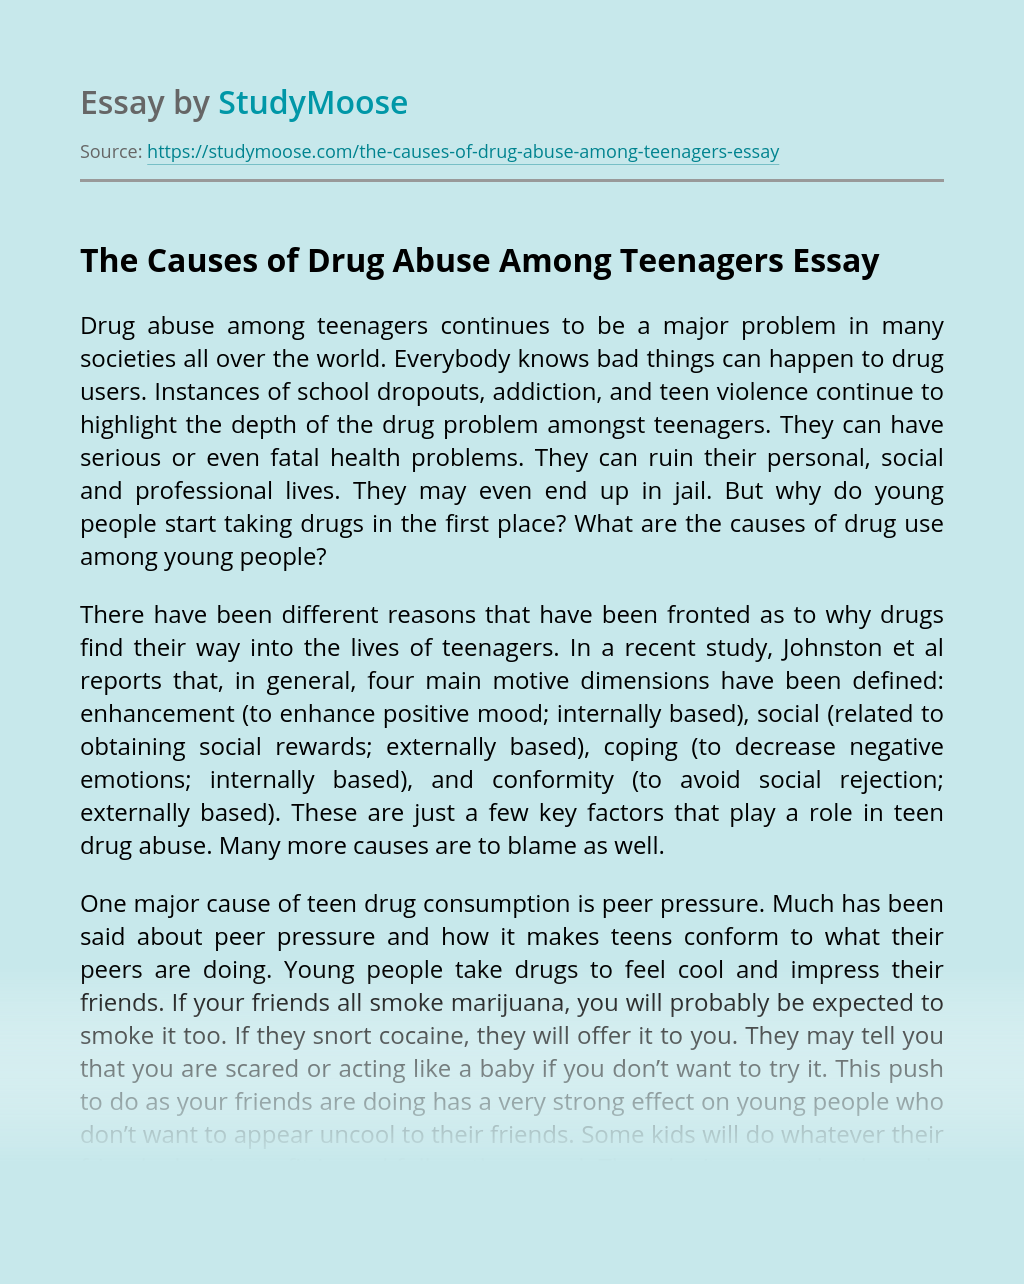 The Causes of Drug Abuse Among Teenagers